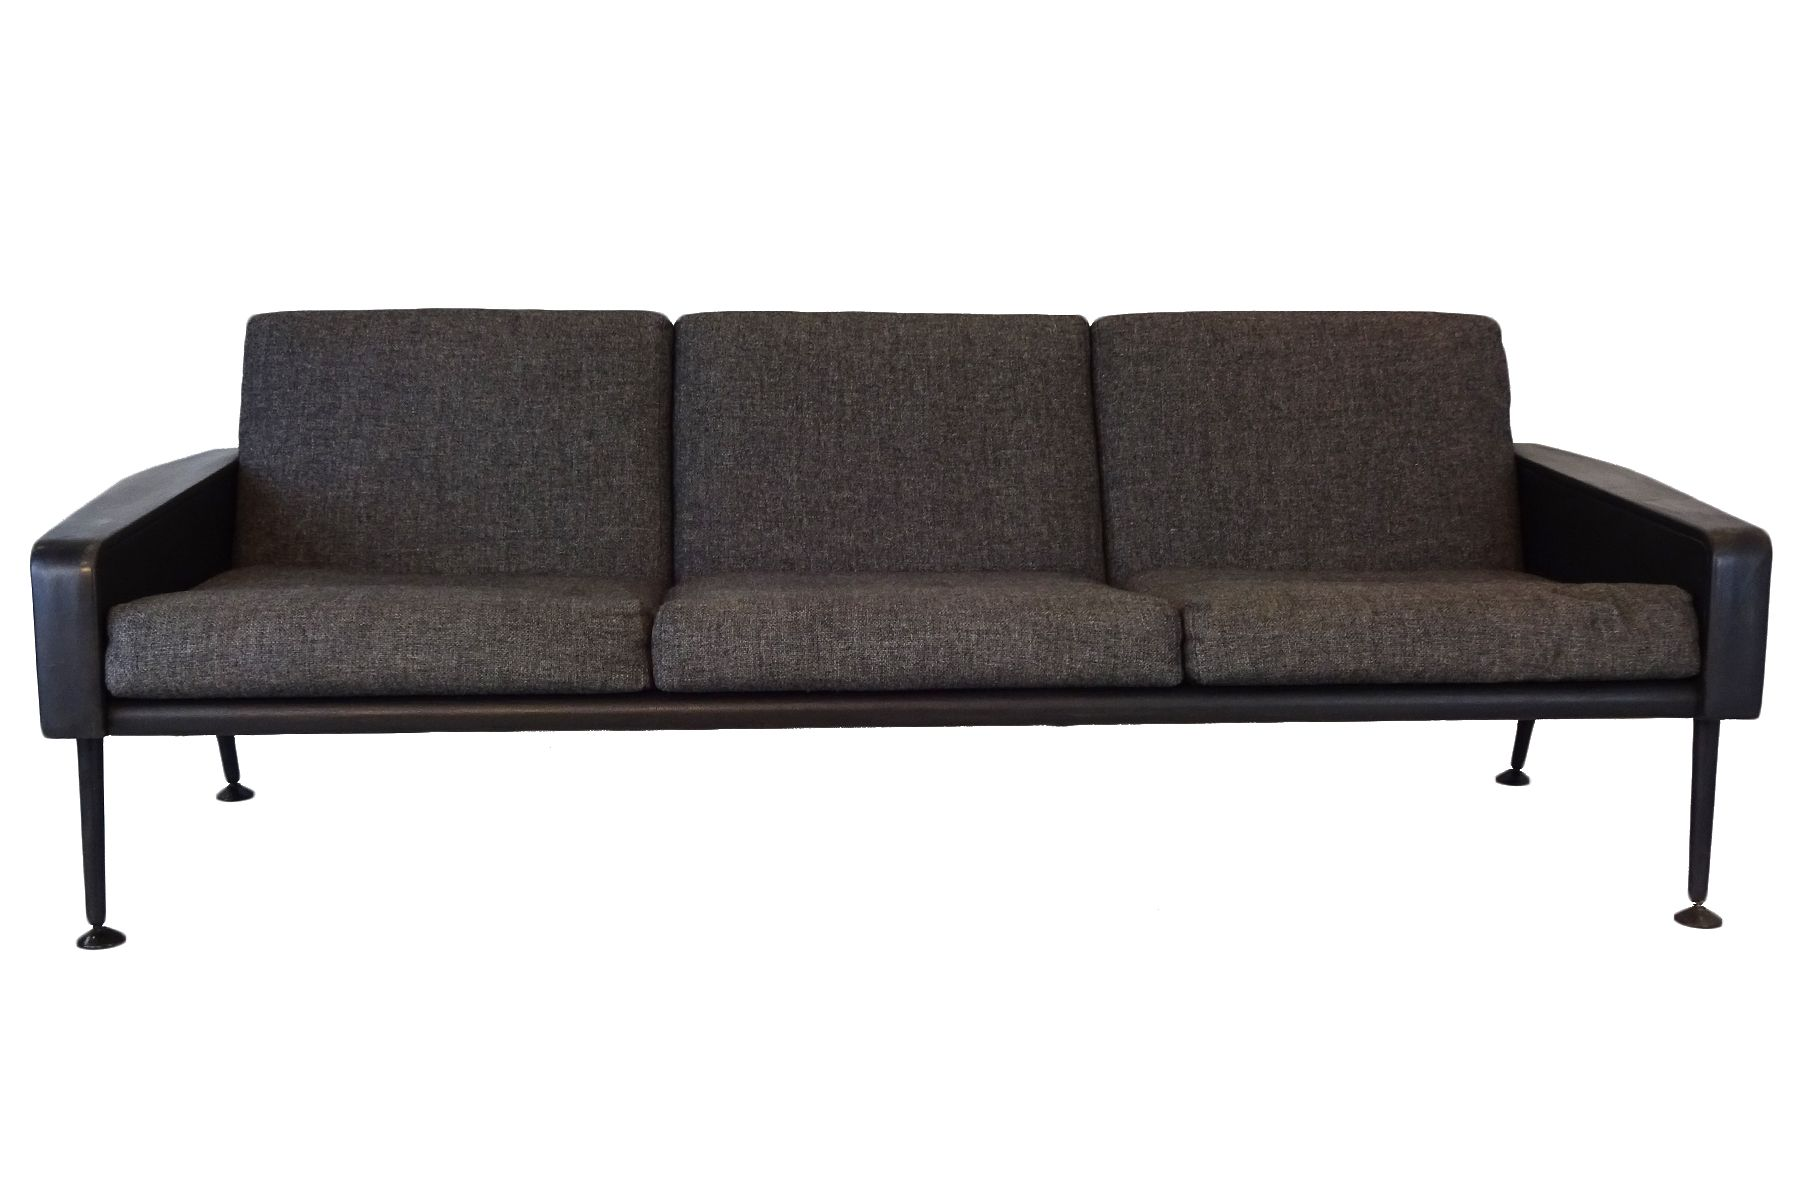 r57 3 sitzer sofa aus stoff leder von ernest race 1960er bei pamono kaufen. Black Bedroom Furniture Sets. Home Design Ideas